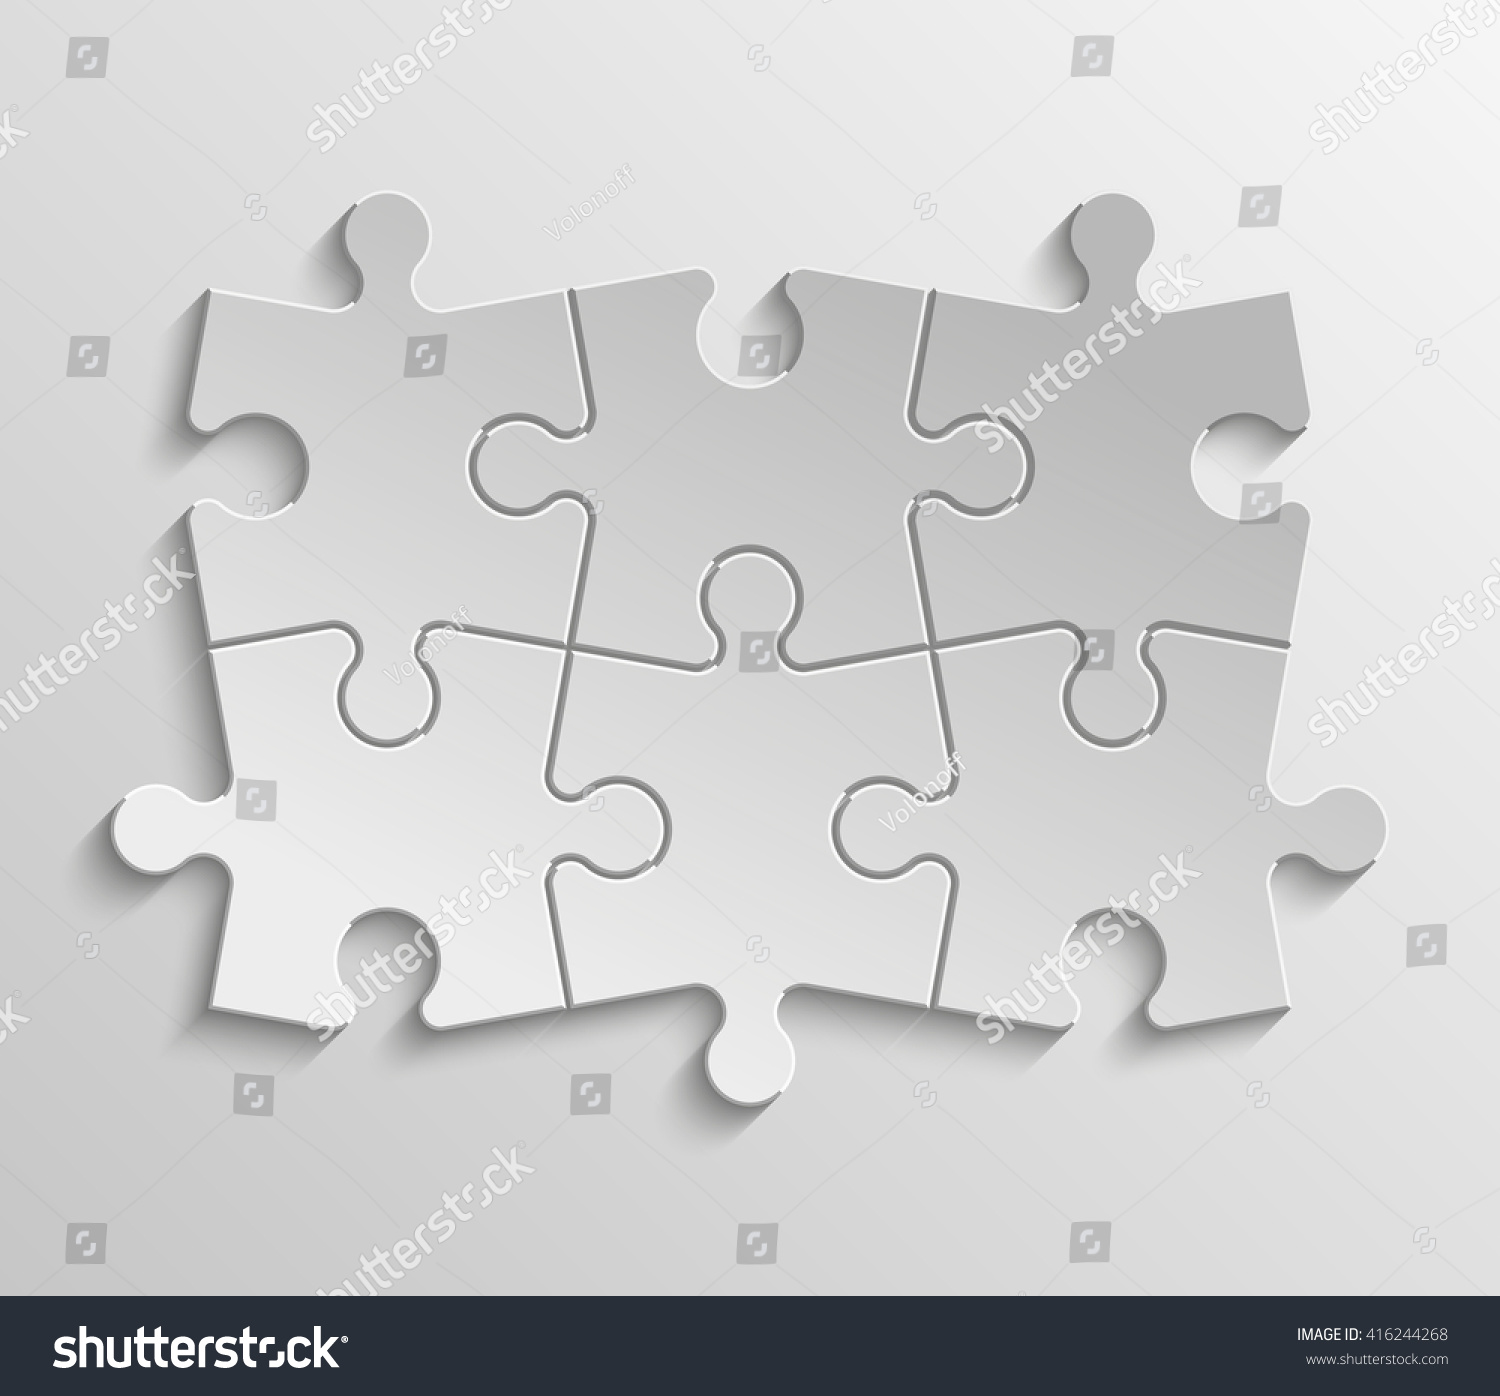 Six Piece Flat Puzzle Round Infographic Stock Vector (Royalty Free ...